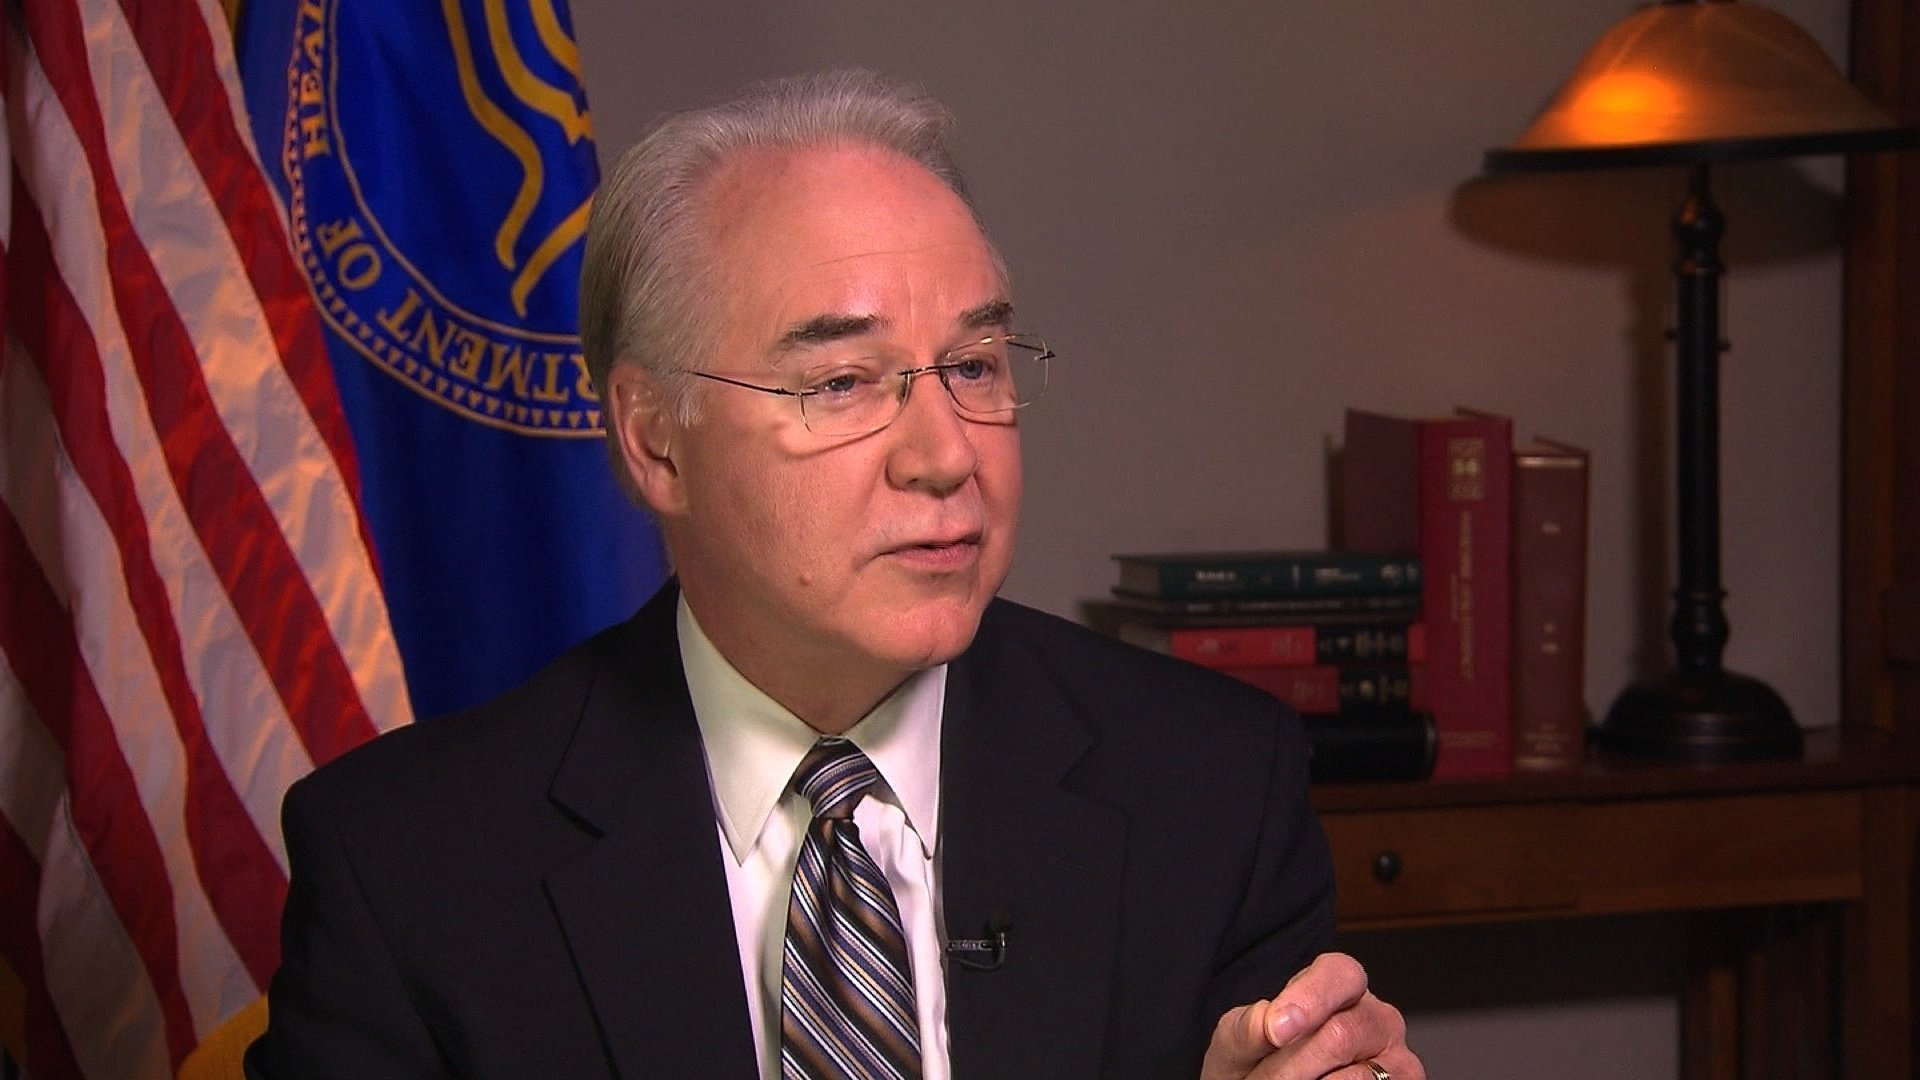 Price says he will pay taxpayers back after private jet controversy